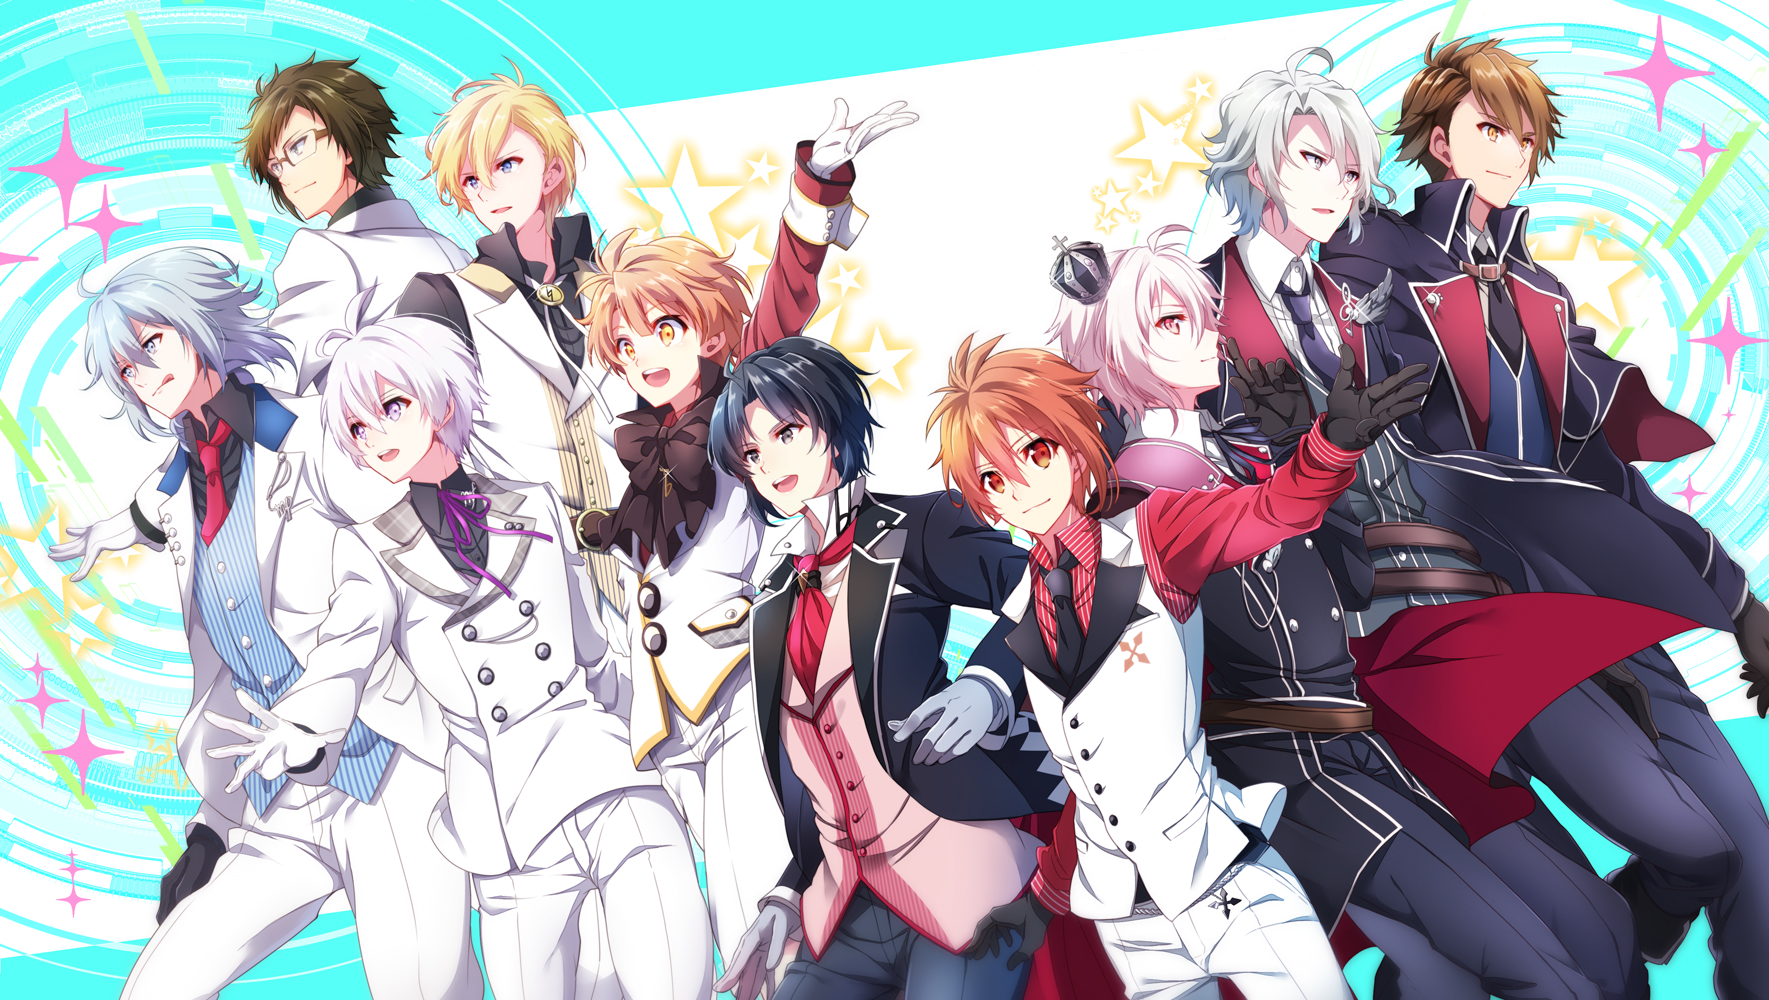 https://static.zerochan.net/IDOLiSH7.full.1980328.jpg